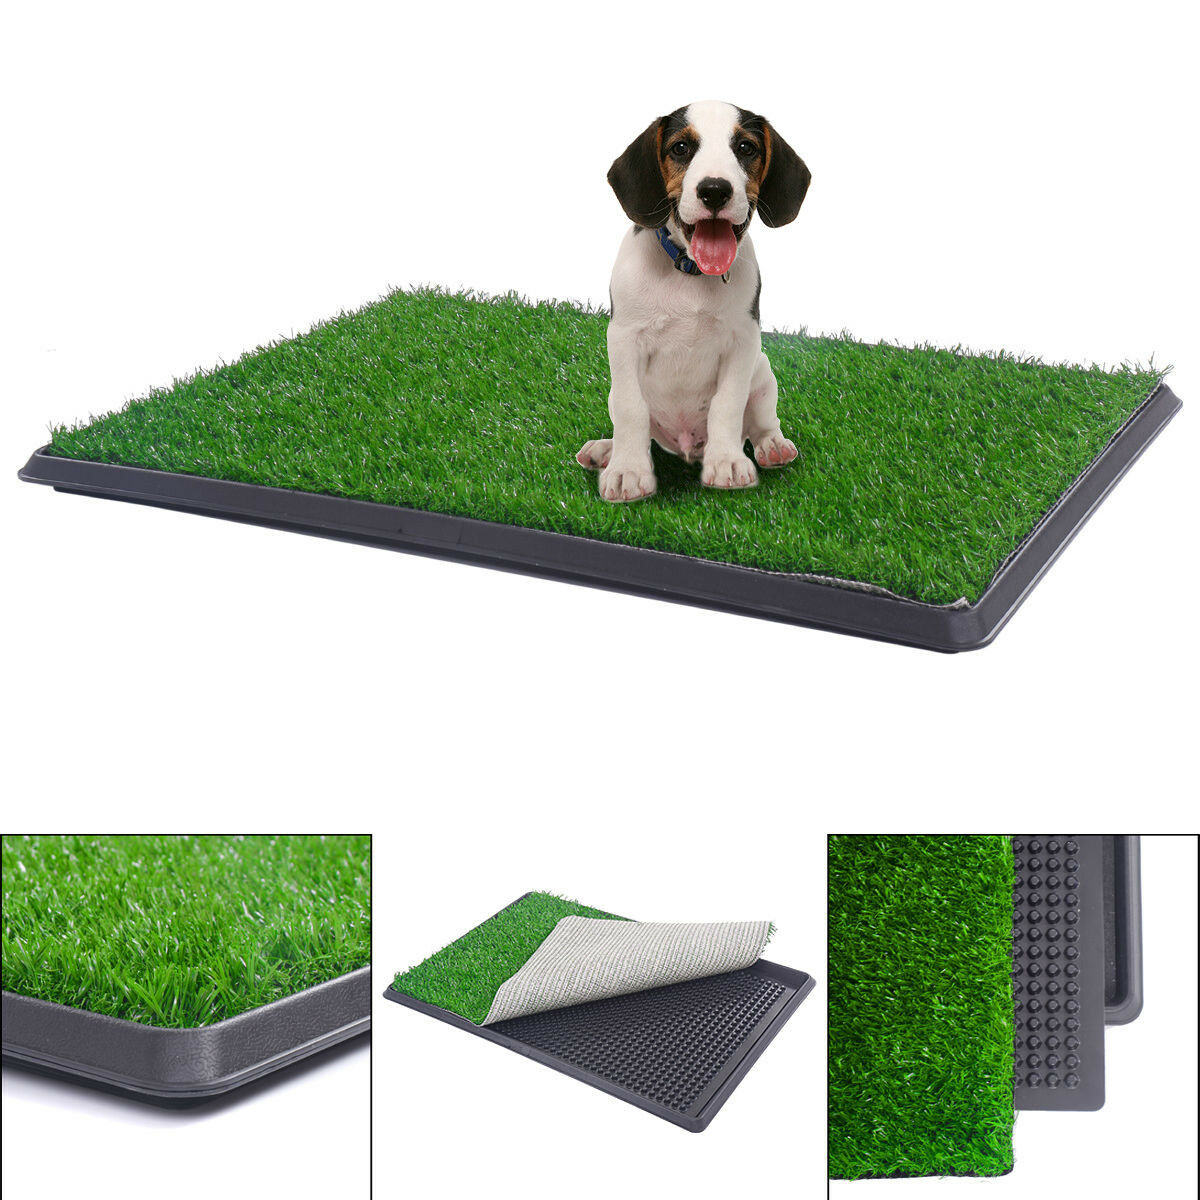 topcobe artificial grass dog potty grass puppy potty trainer 30 x20 fake grass turf for dogs potty training area patio lawn decoration